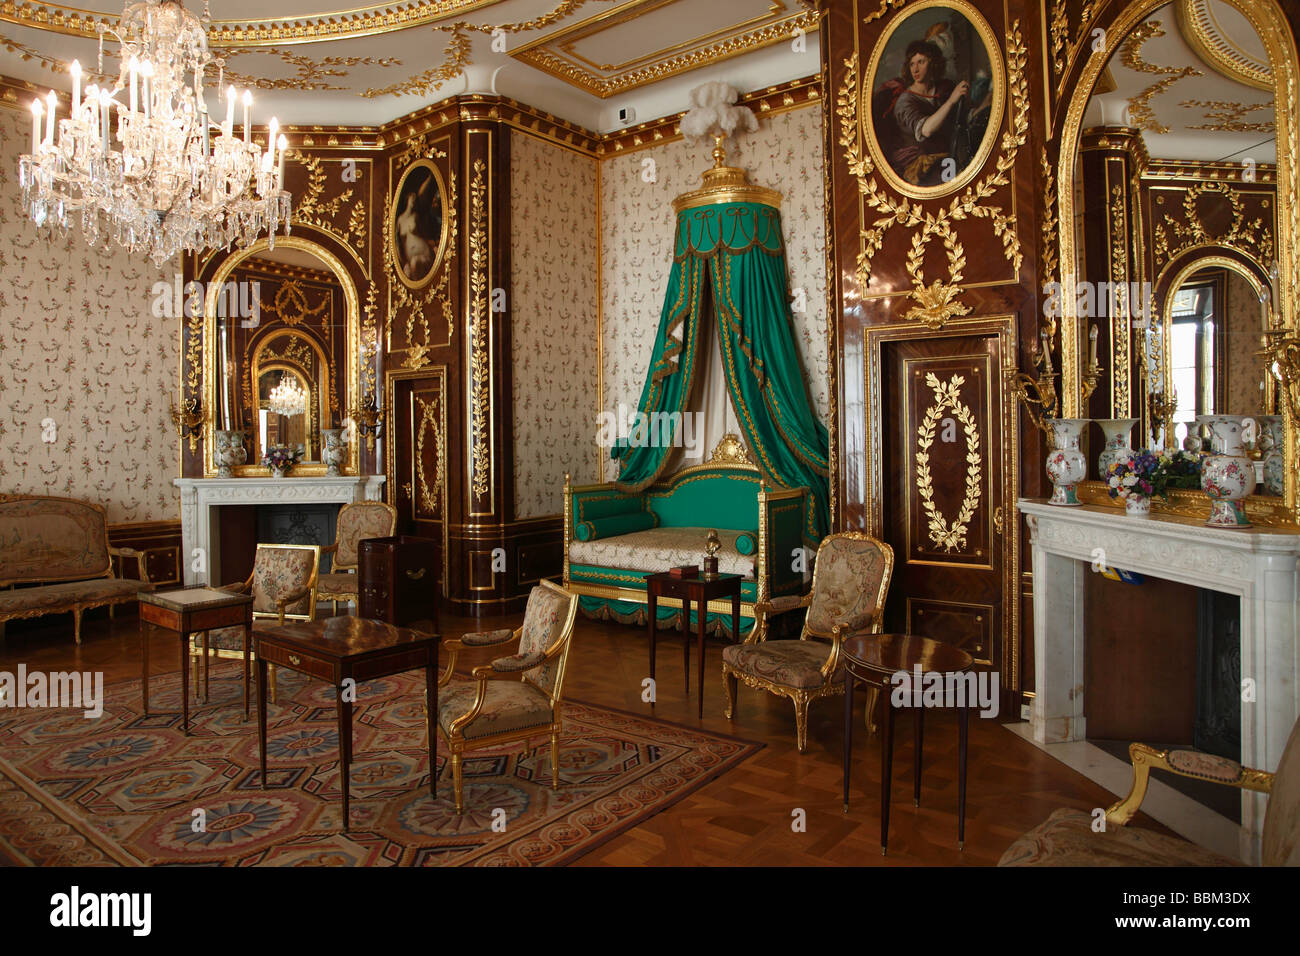 Poland Warsaw Royal Castle interior - Stock Image